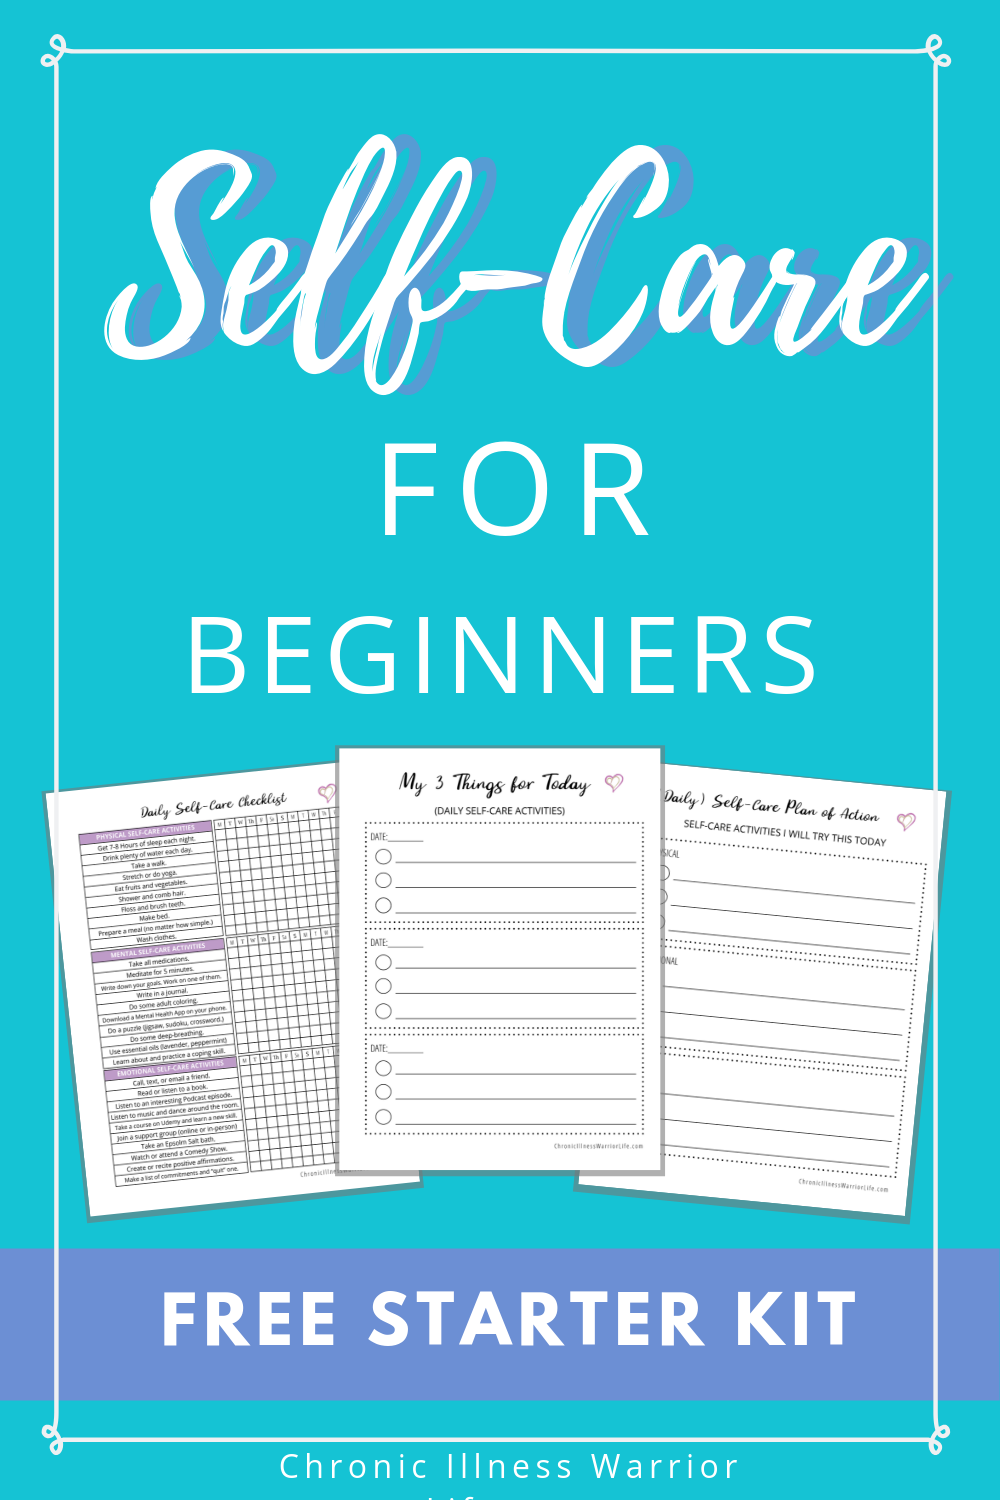 Knowhow Care Plan >> The Easy Beginner S Guide To Self Care Health And Fitness